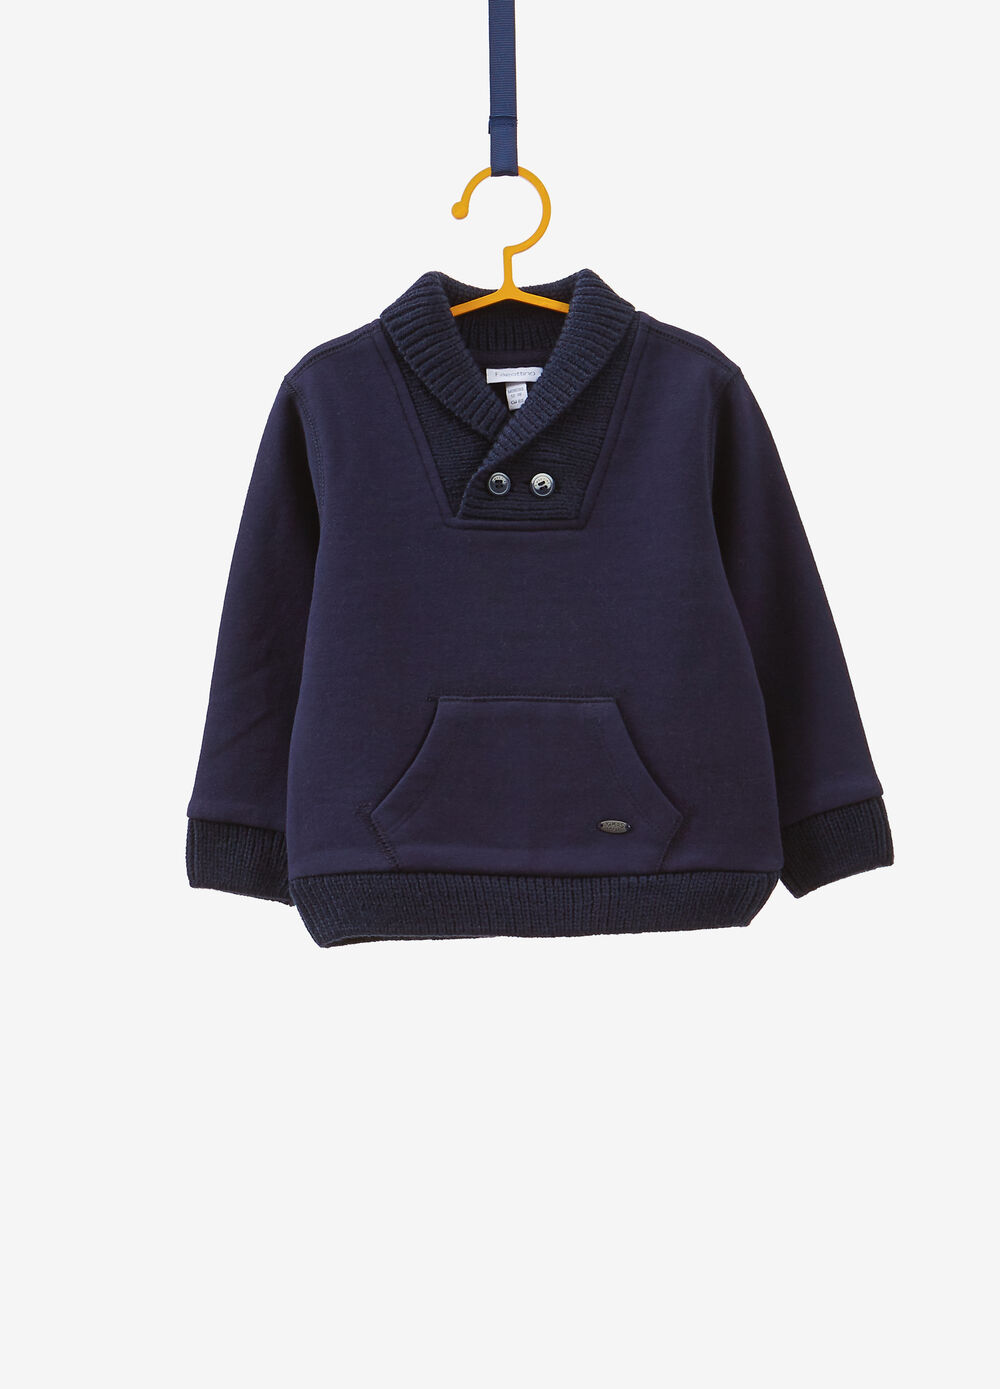 Solid colour pullover with pocket and buttons